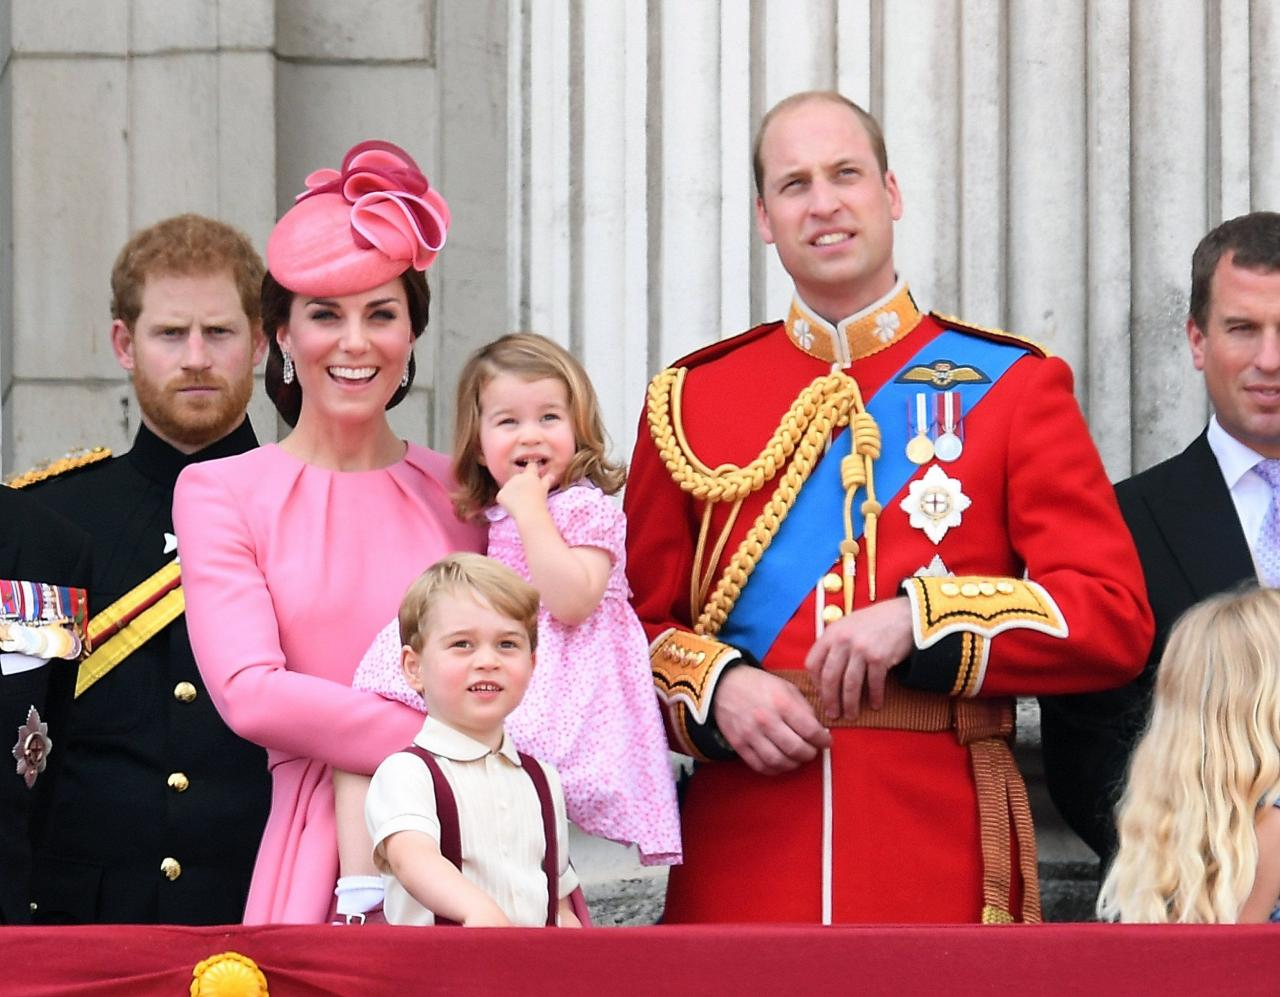 LONDON, ENGLAND - JUNE 17: Catherine, Duchess of Cambridge, Princess Charlotte of Cambridge, Prince George of Cambridge and Prince William, Duke of Cambridge look on from the balcony during the annual Trooping The Colour parade at the Mall on June 17, 2017 in London, England. (Photo by Karwai Tang/WireImage)